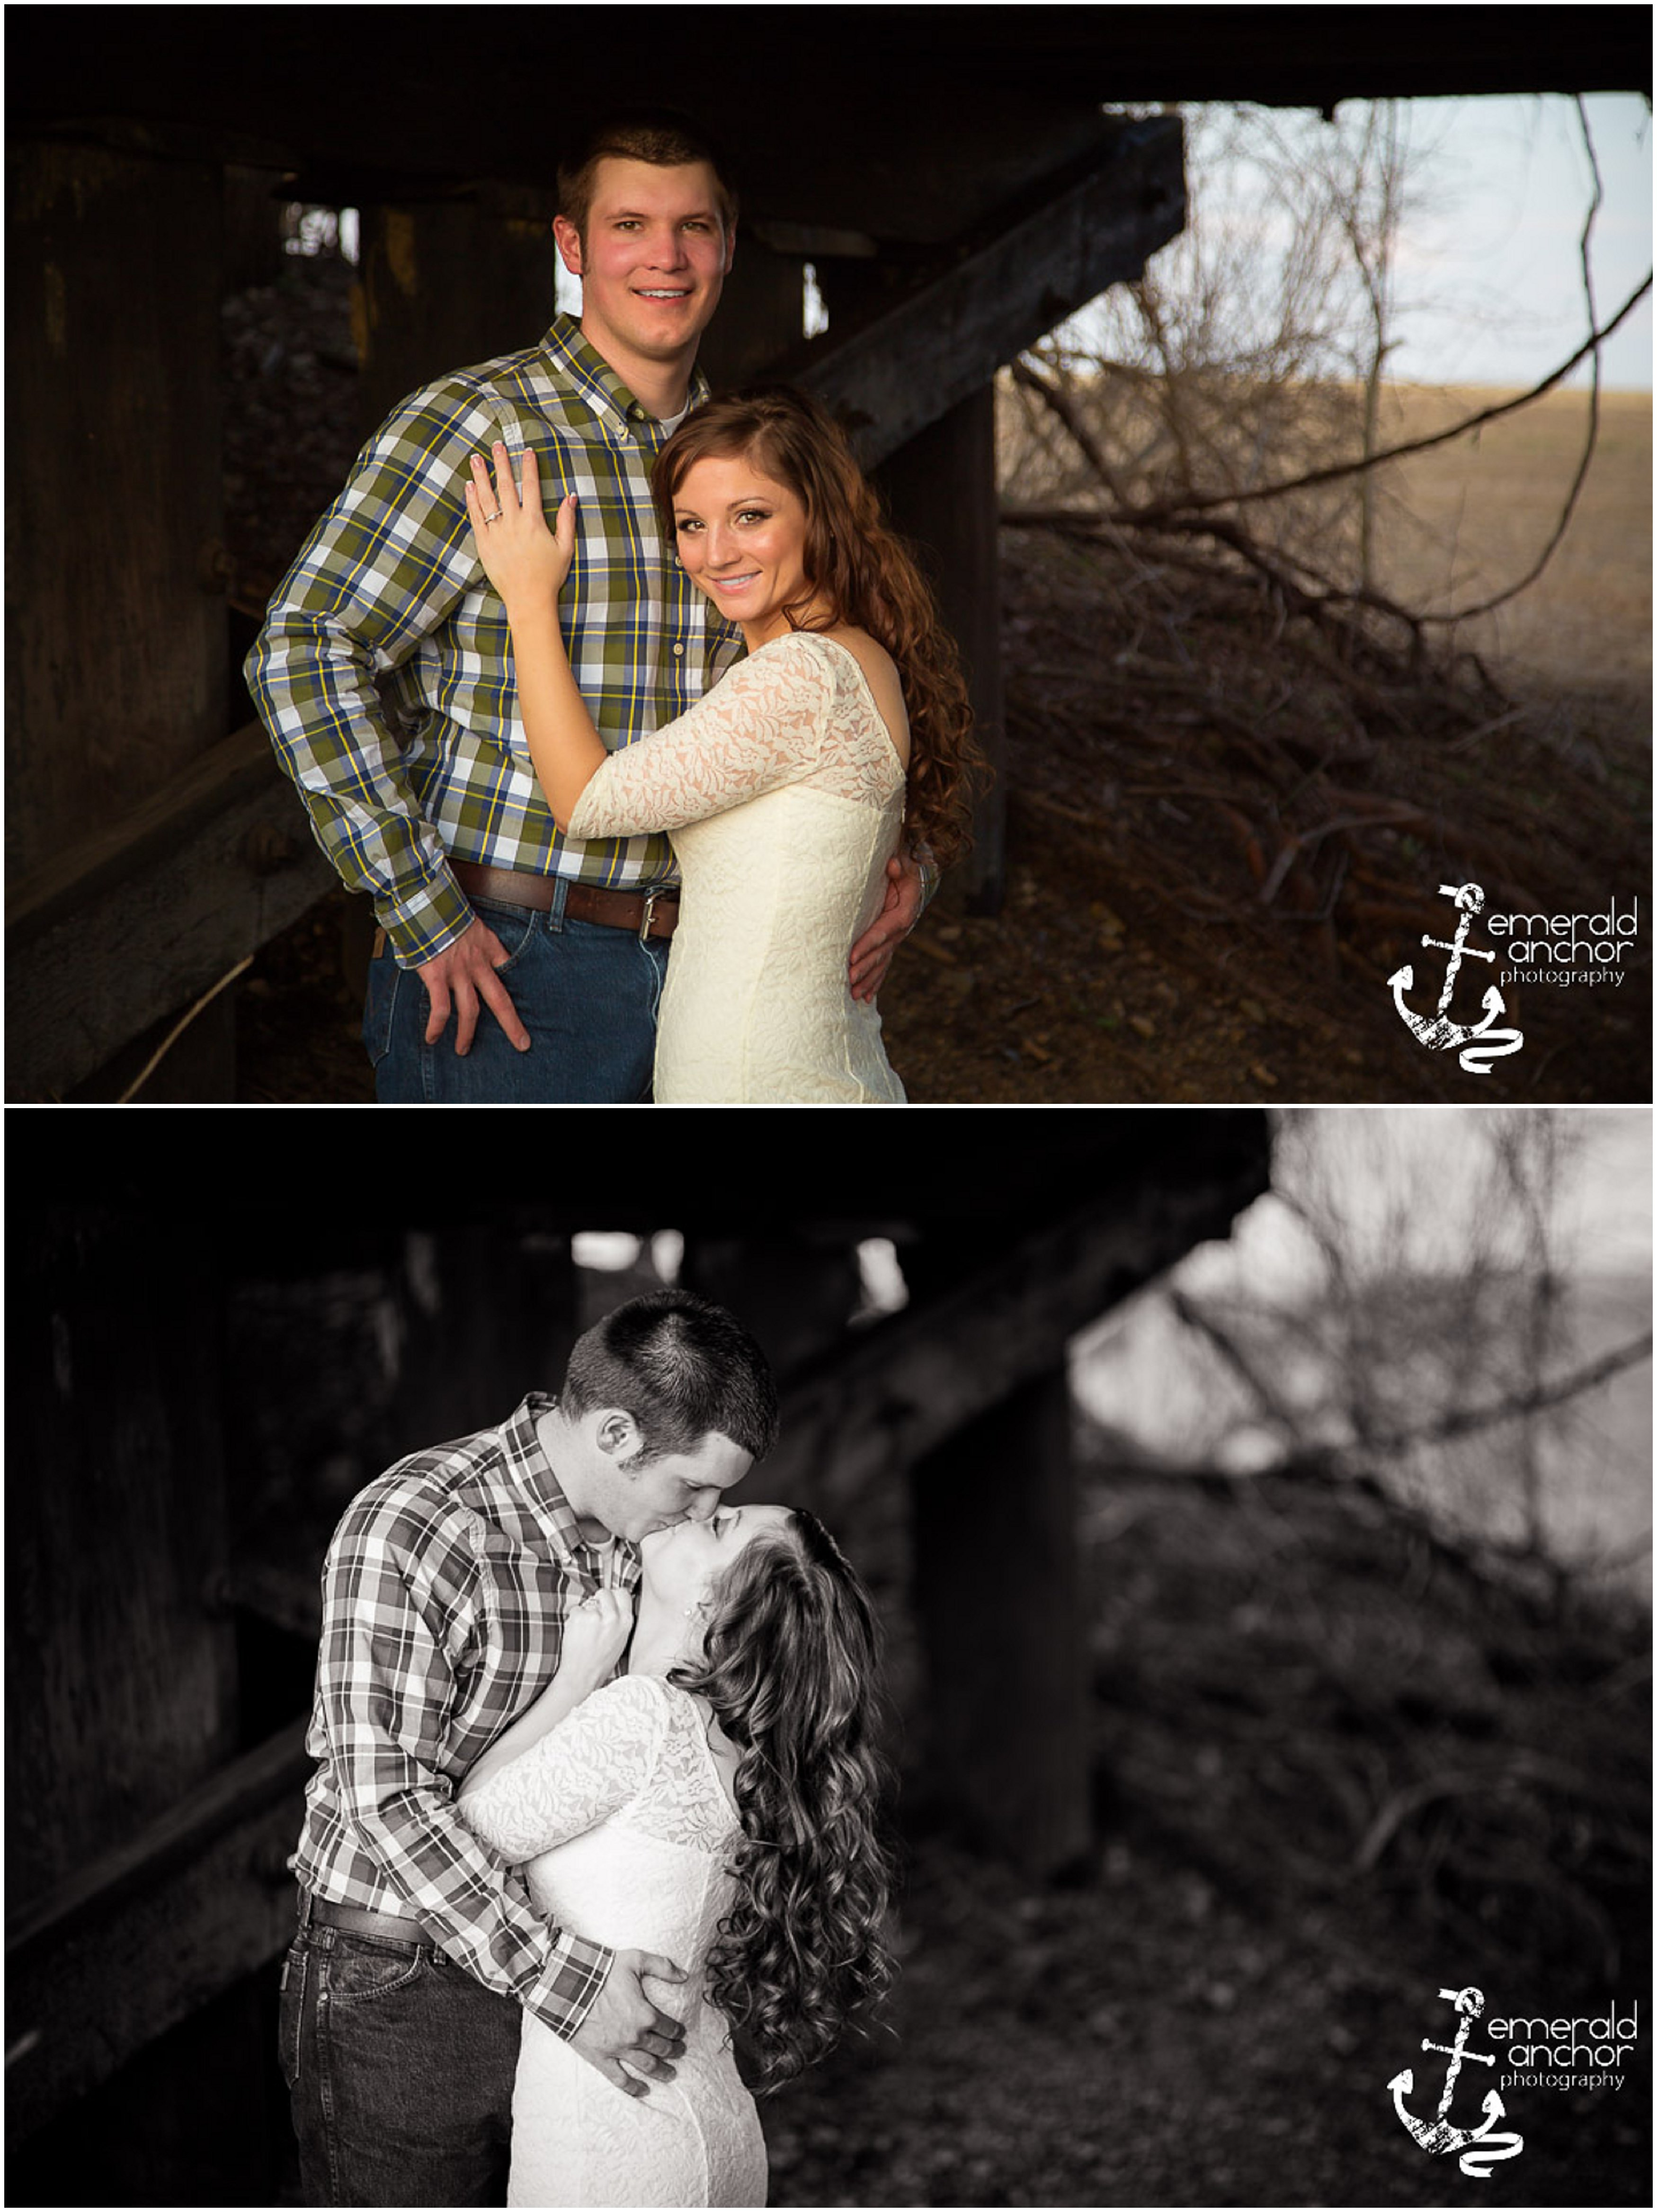 Emerald Anchor Photography Engagement Pictures (3)